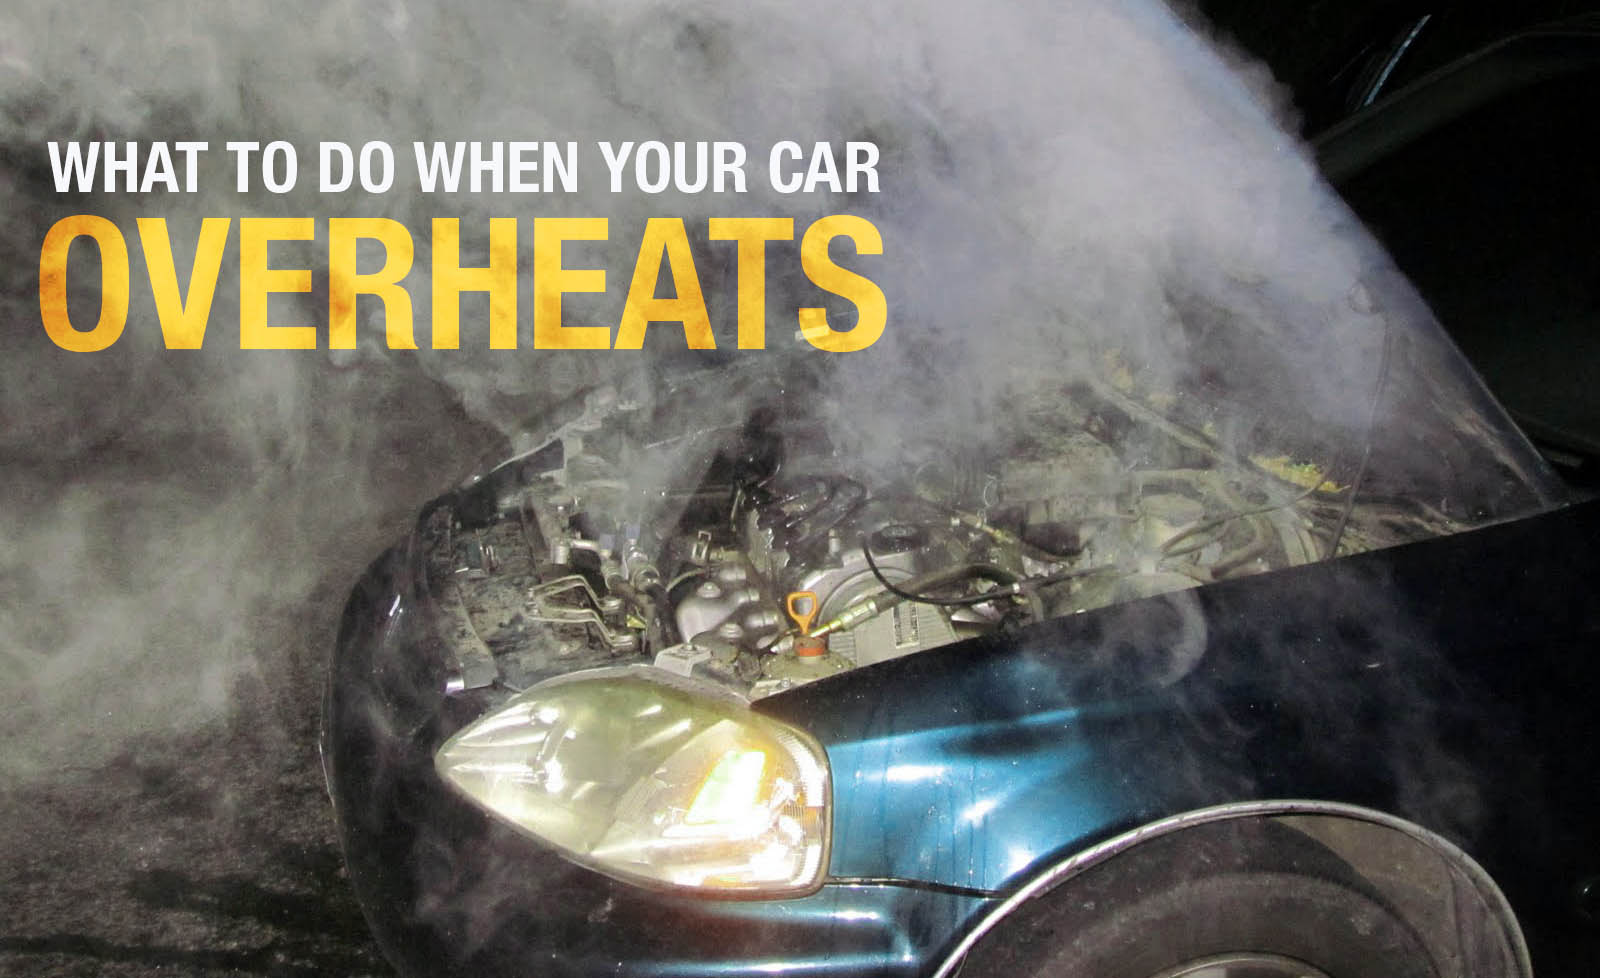 What To Do When Your Engine Overheats: A Complete Guide To Handle Car Overheating